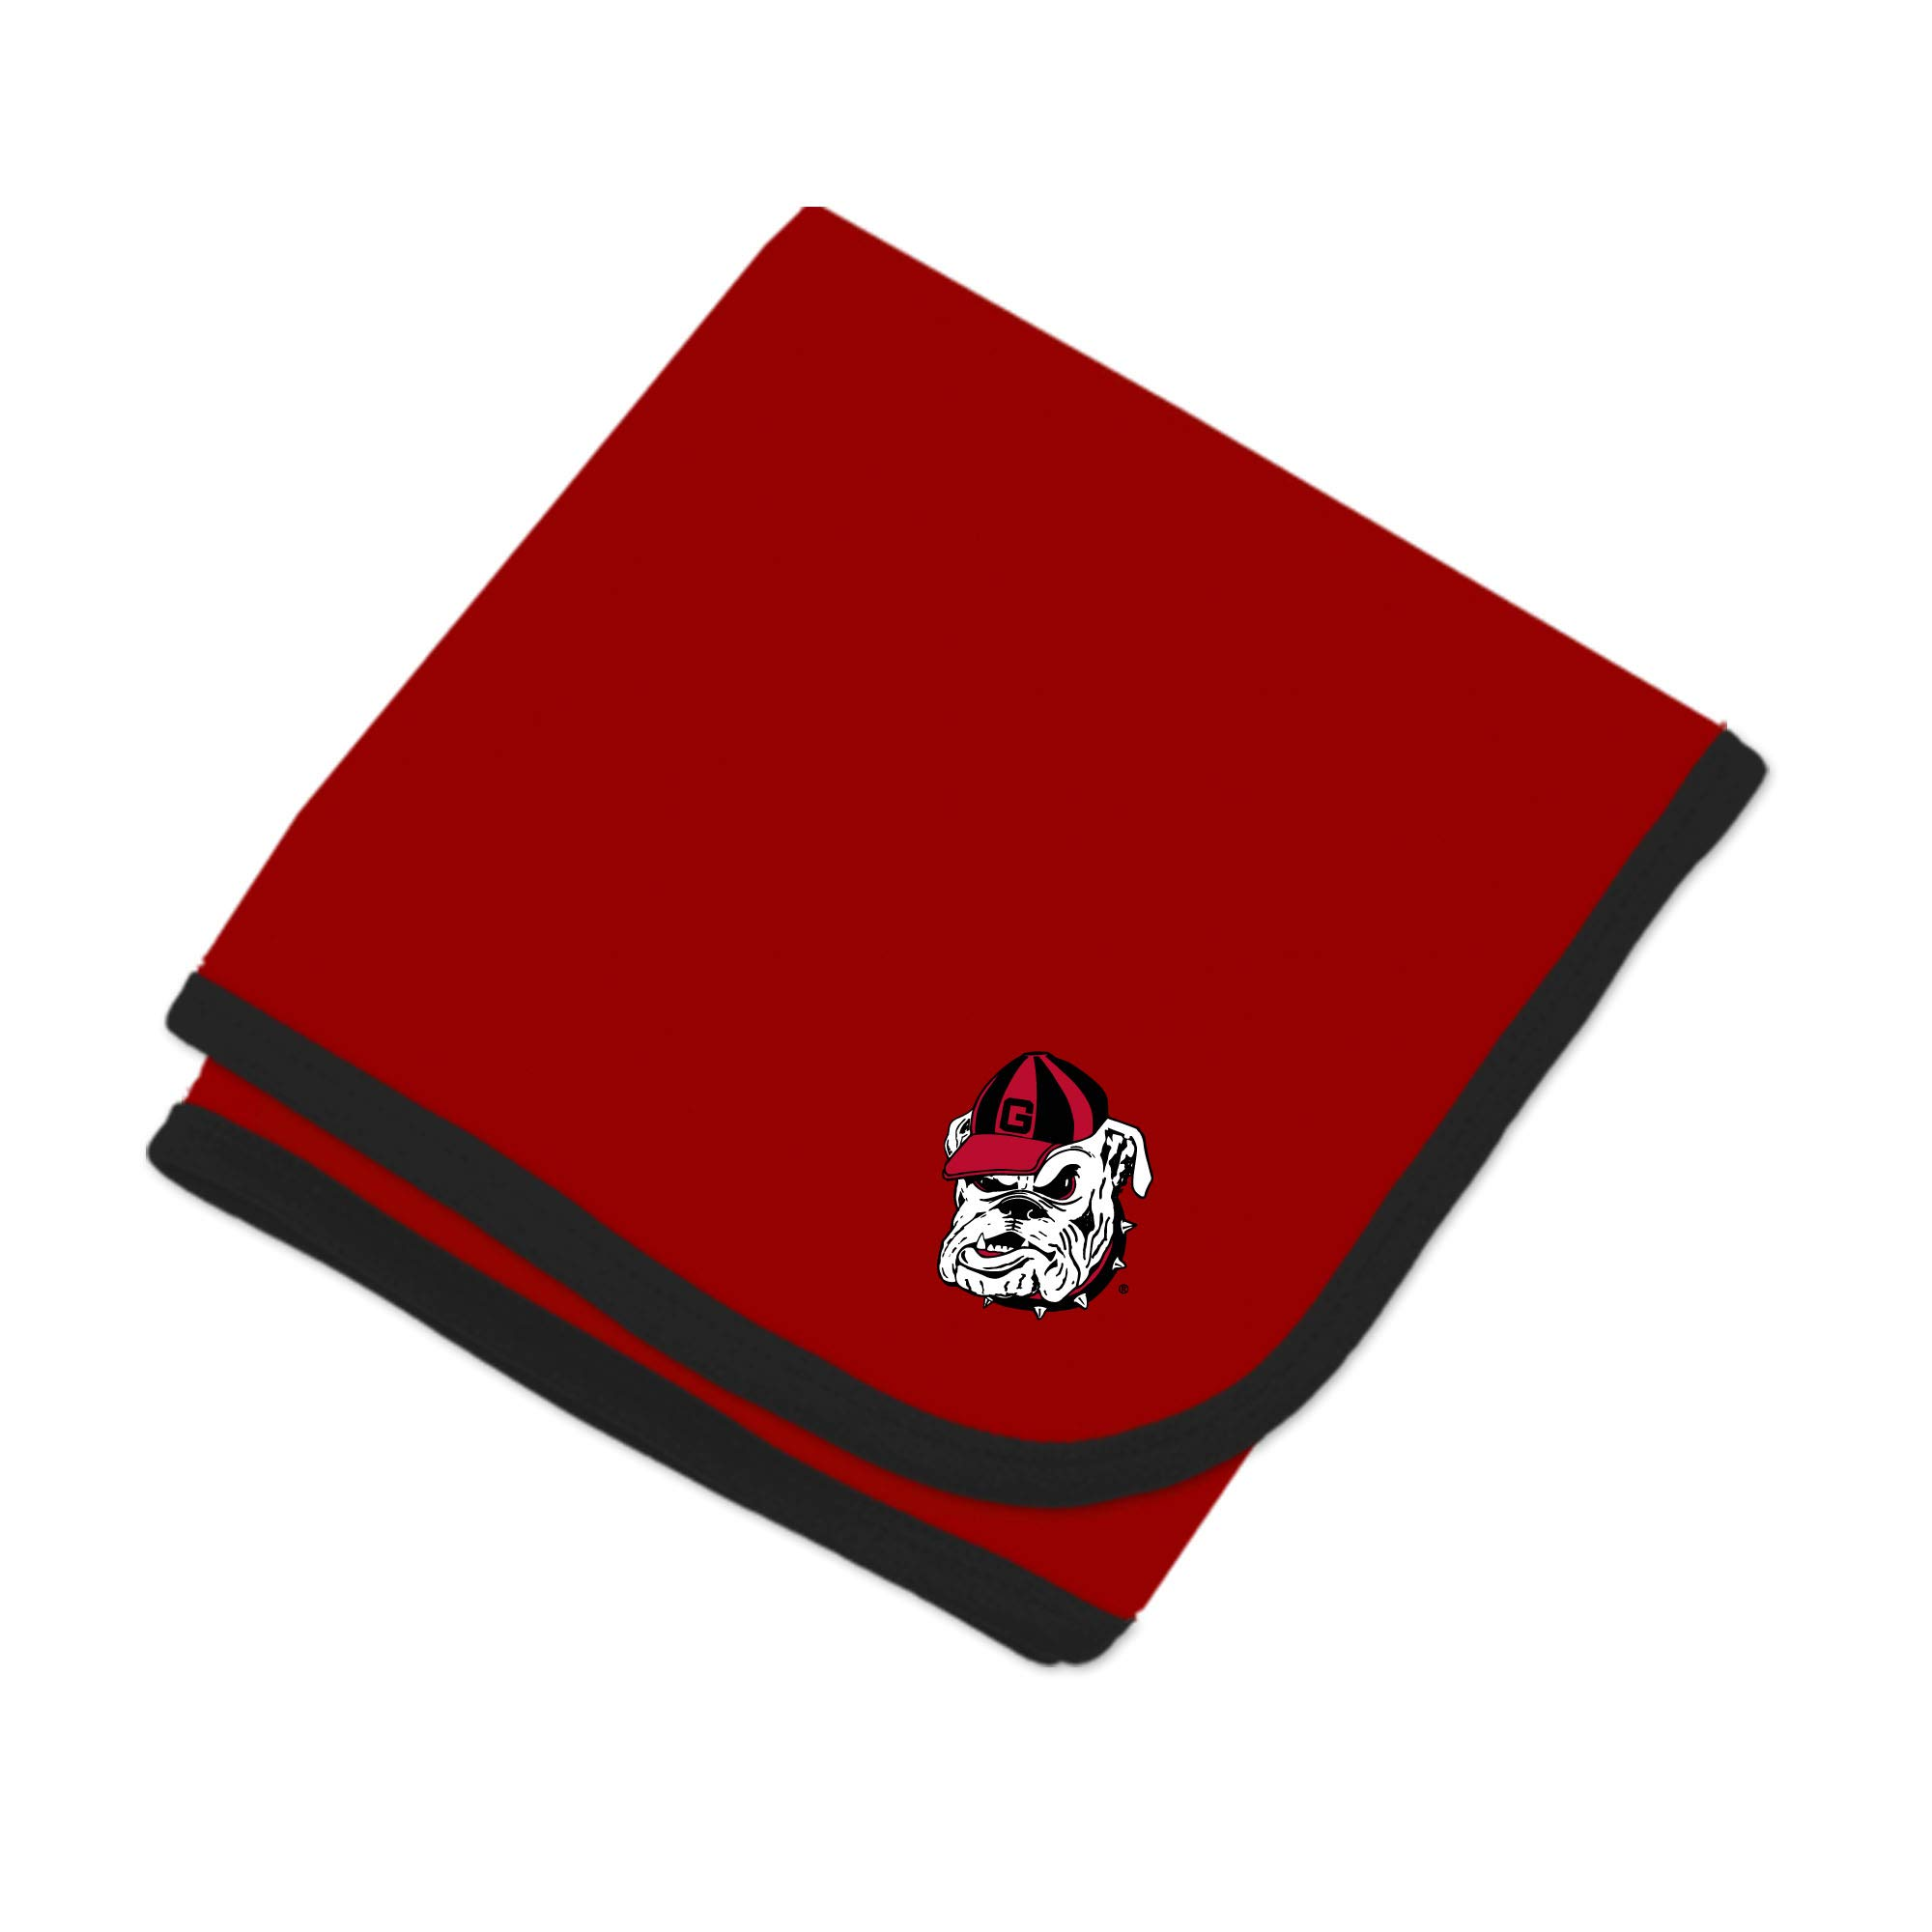 Georgia Bulldogs NCAA Baby Newborn Infant One Size 30'' X 35'' Baby Blanket Red,Black by Two Feet Ahead